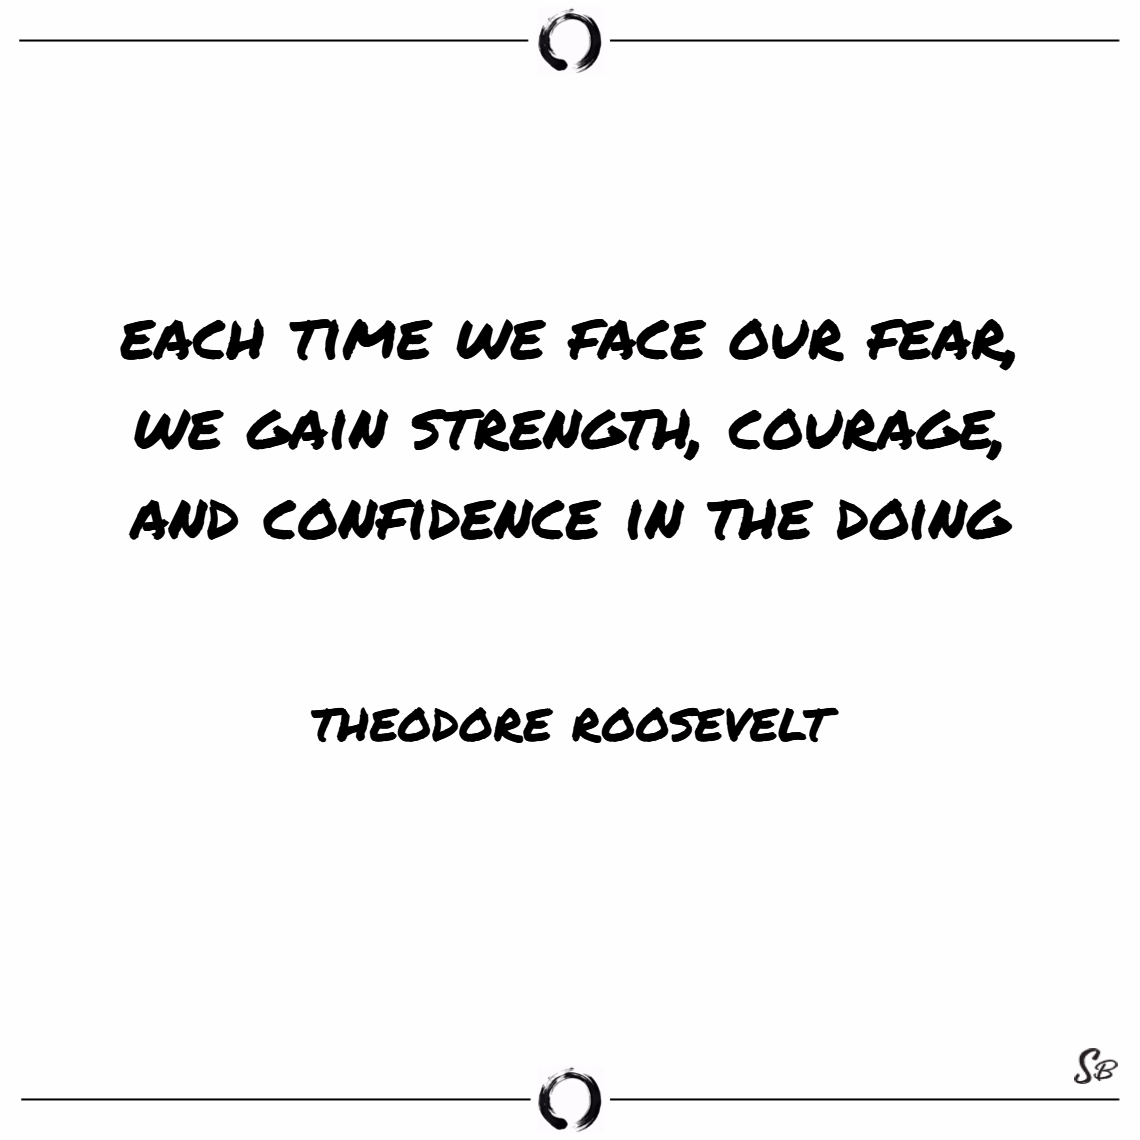 Each time we face our fear, we gain strength, courage, and confidence in the doing. – theodore roosevelt